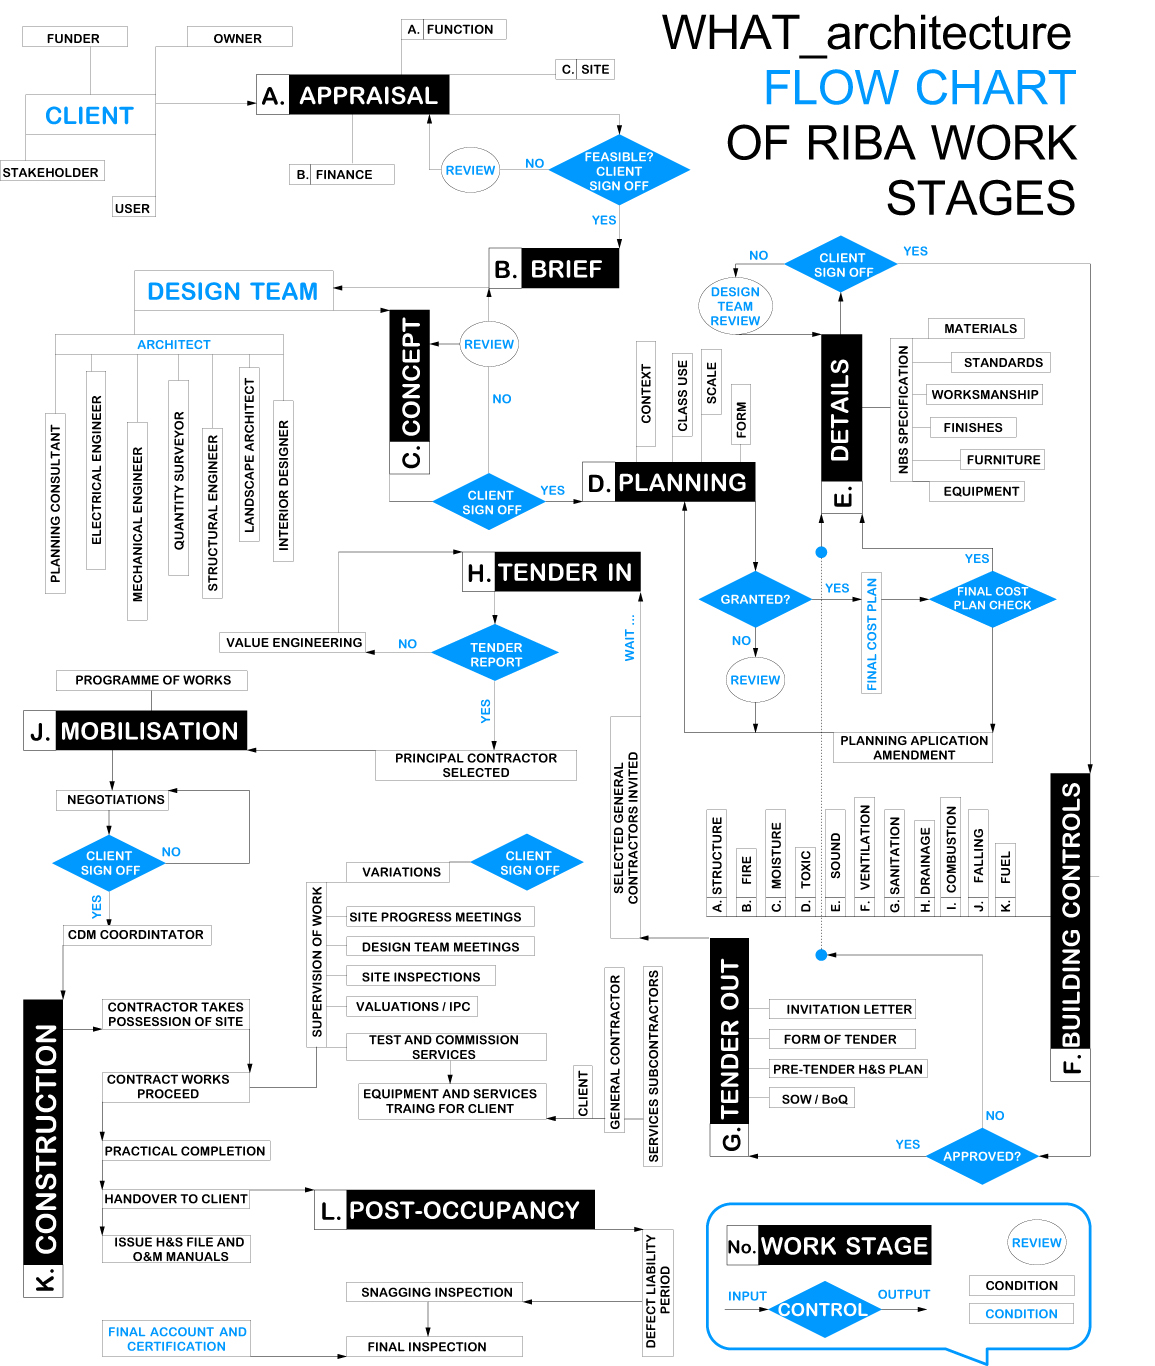 000off_WHAT_architecture design process flow chart